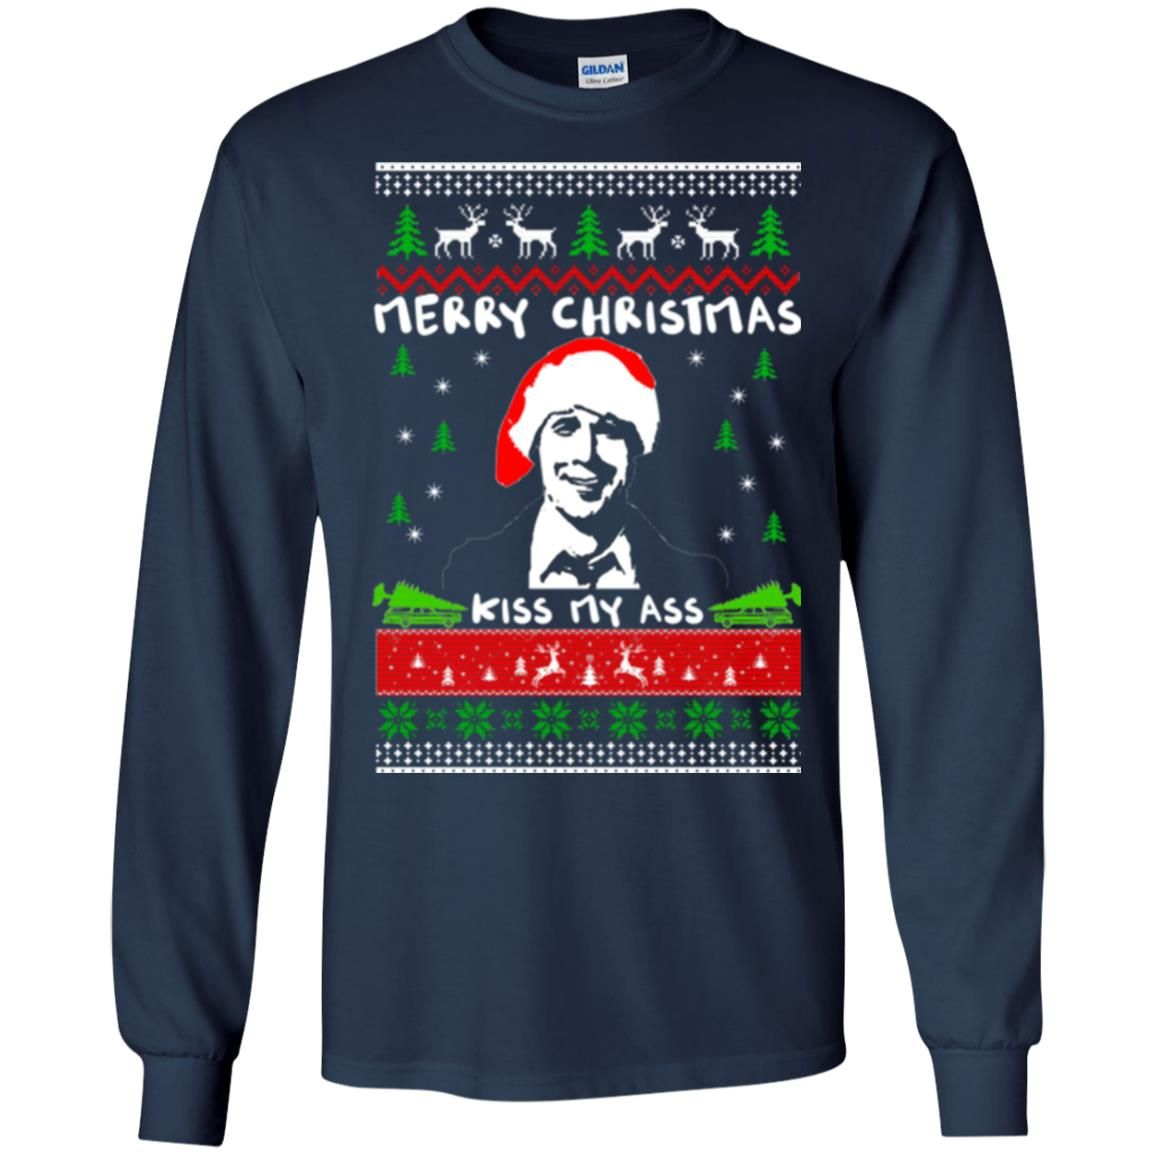 image 1696 - Clark Griswold: Merry Christmas kiss my ass sweater, hoodie, long sleeve